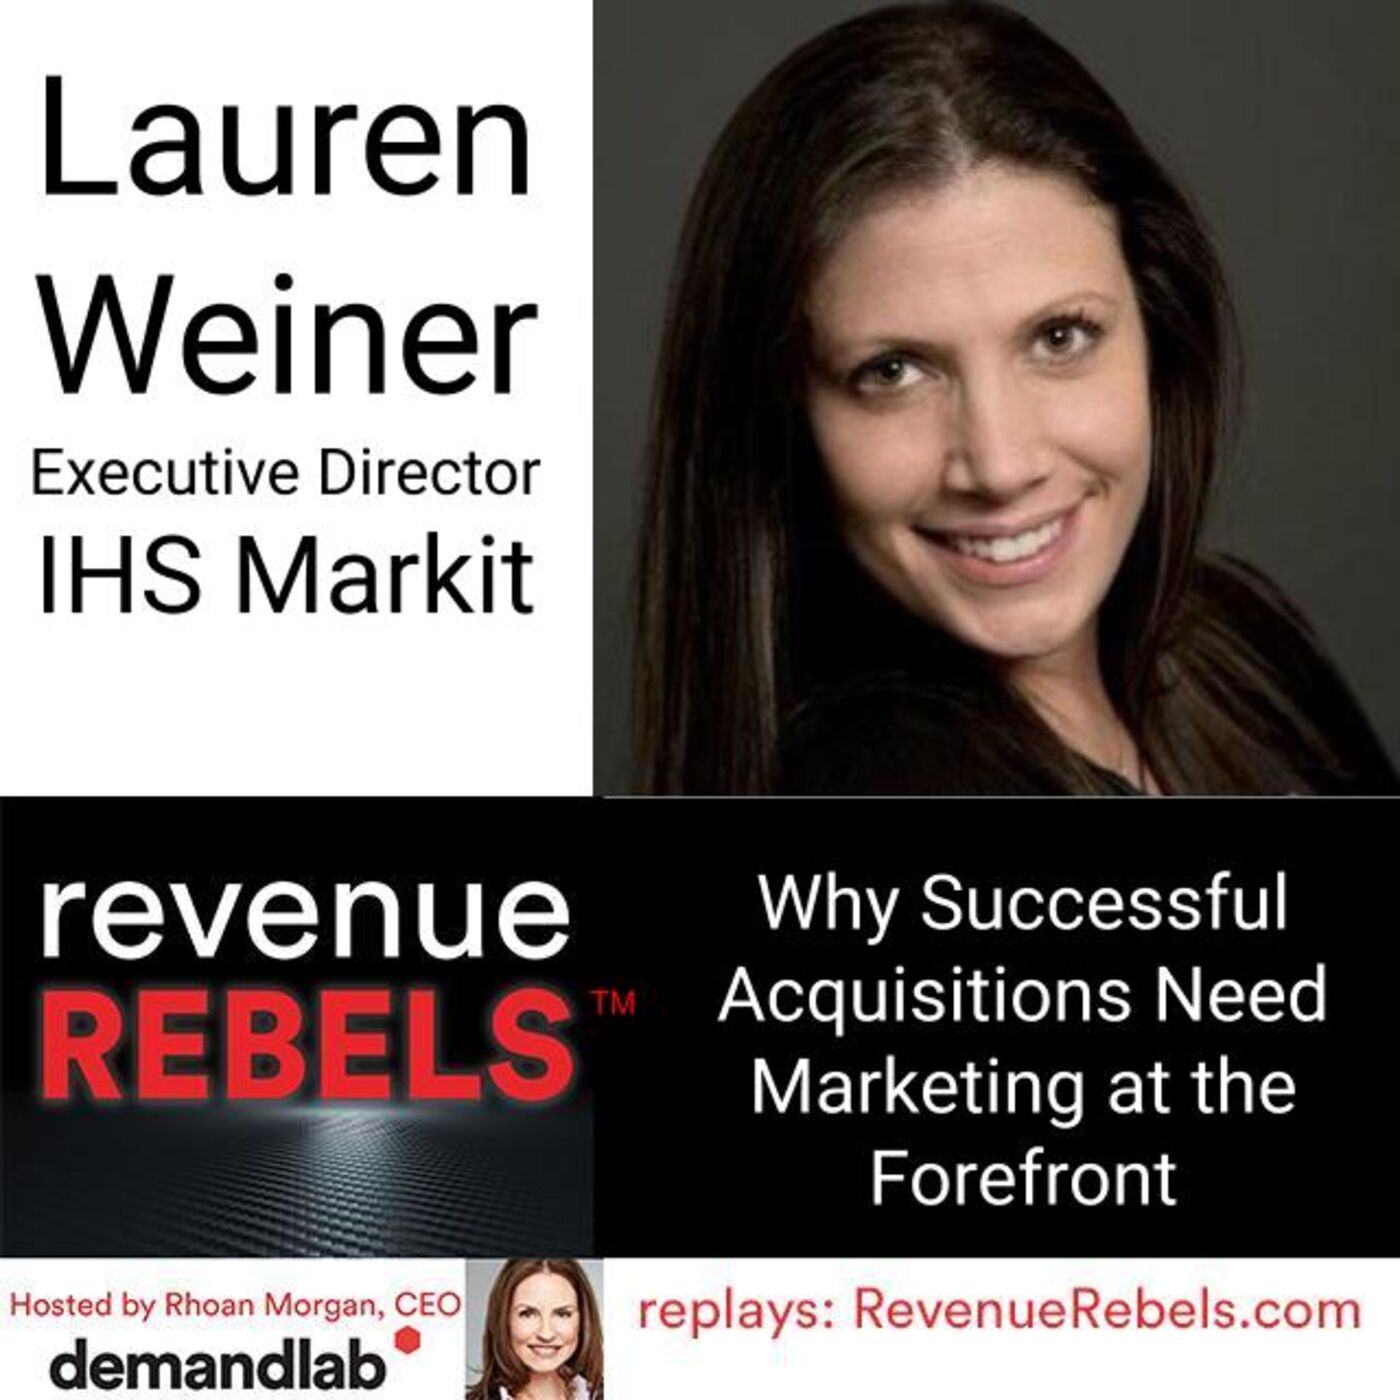 Why Successful Acquisitions Need Marketing at the Forefront